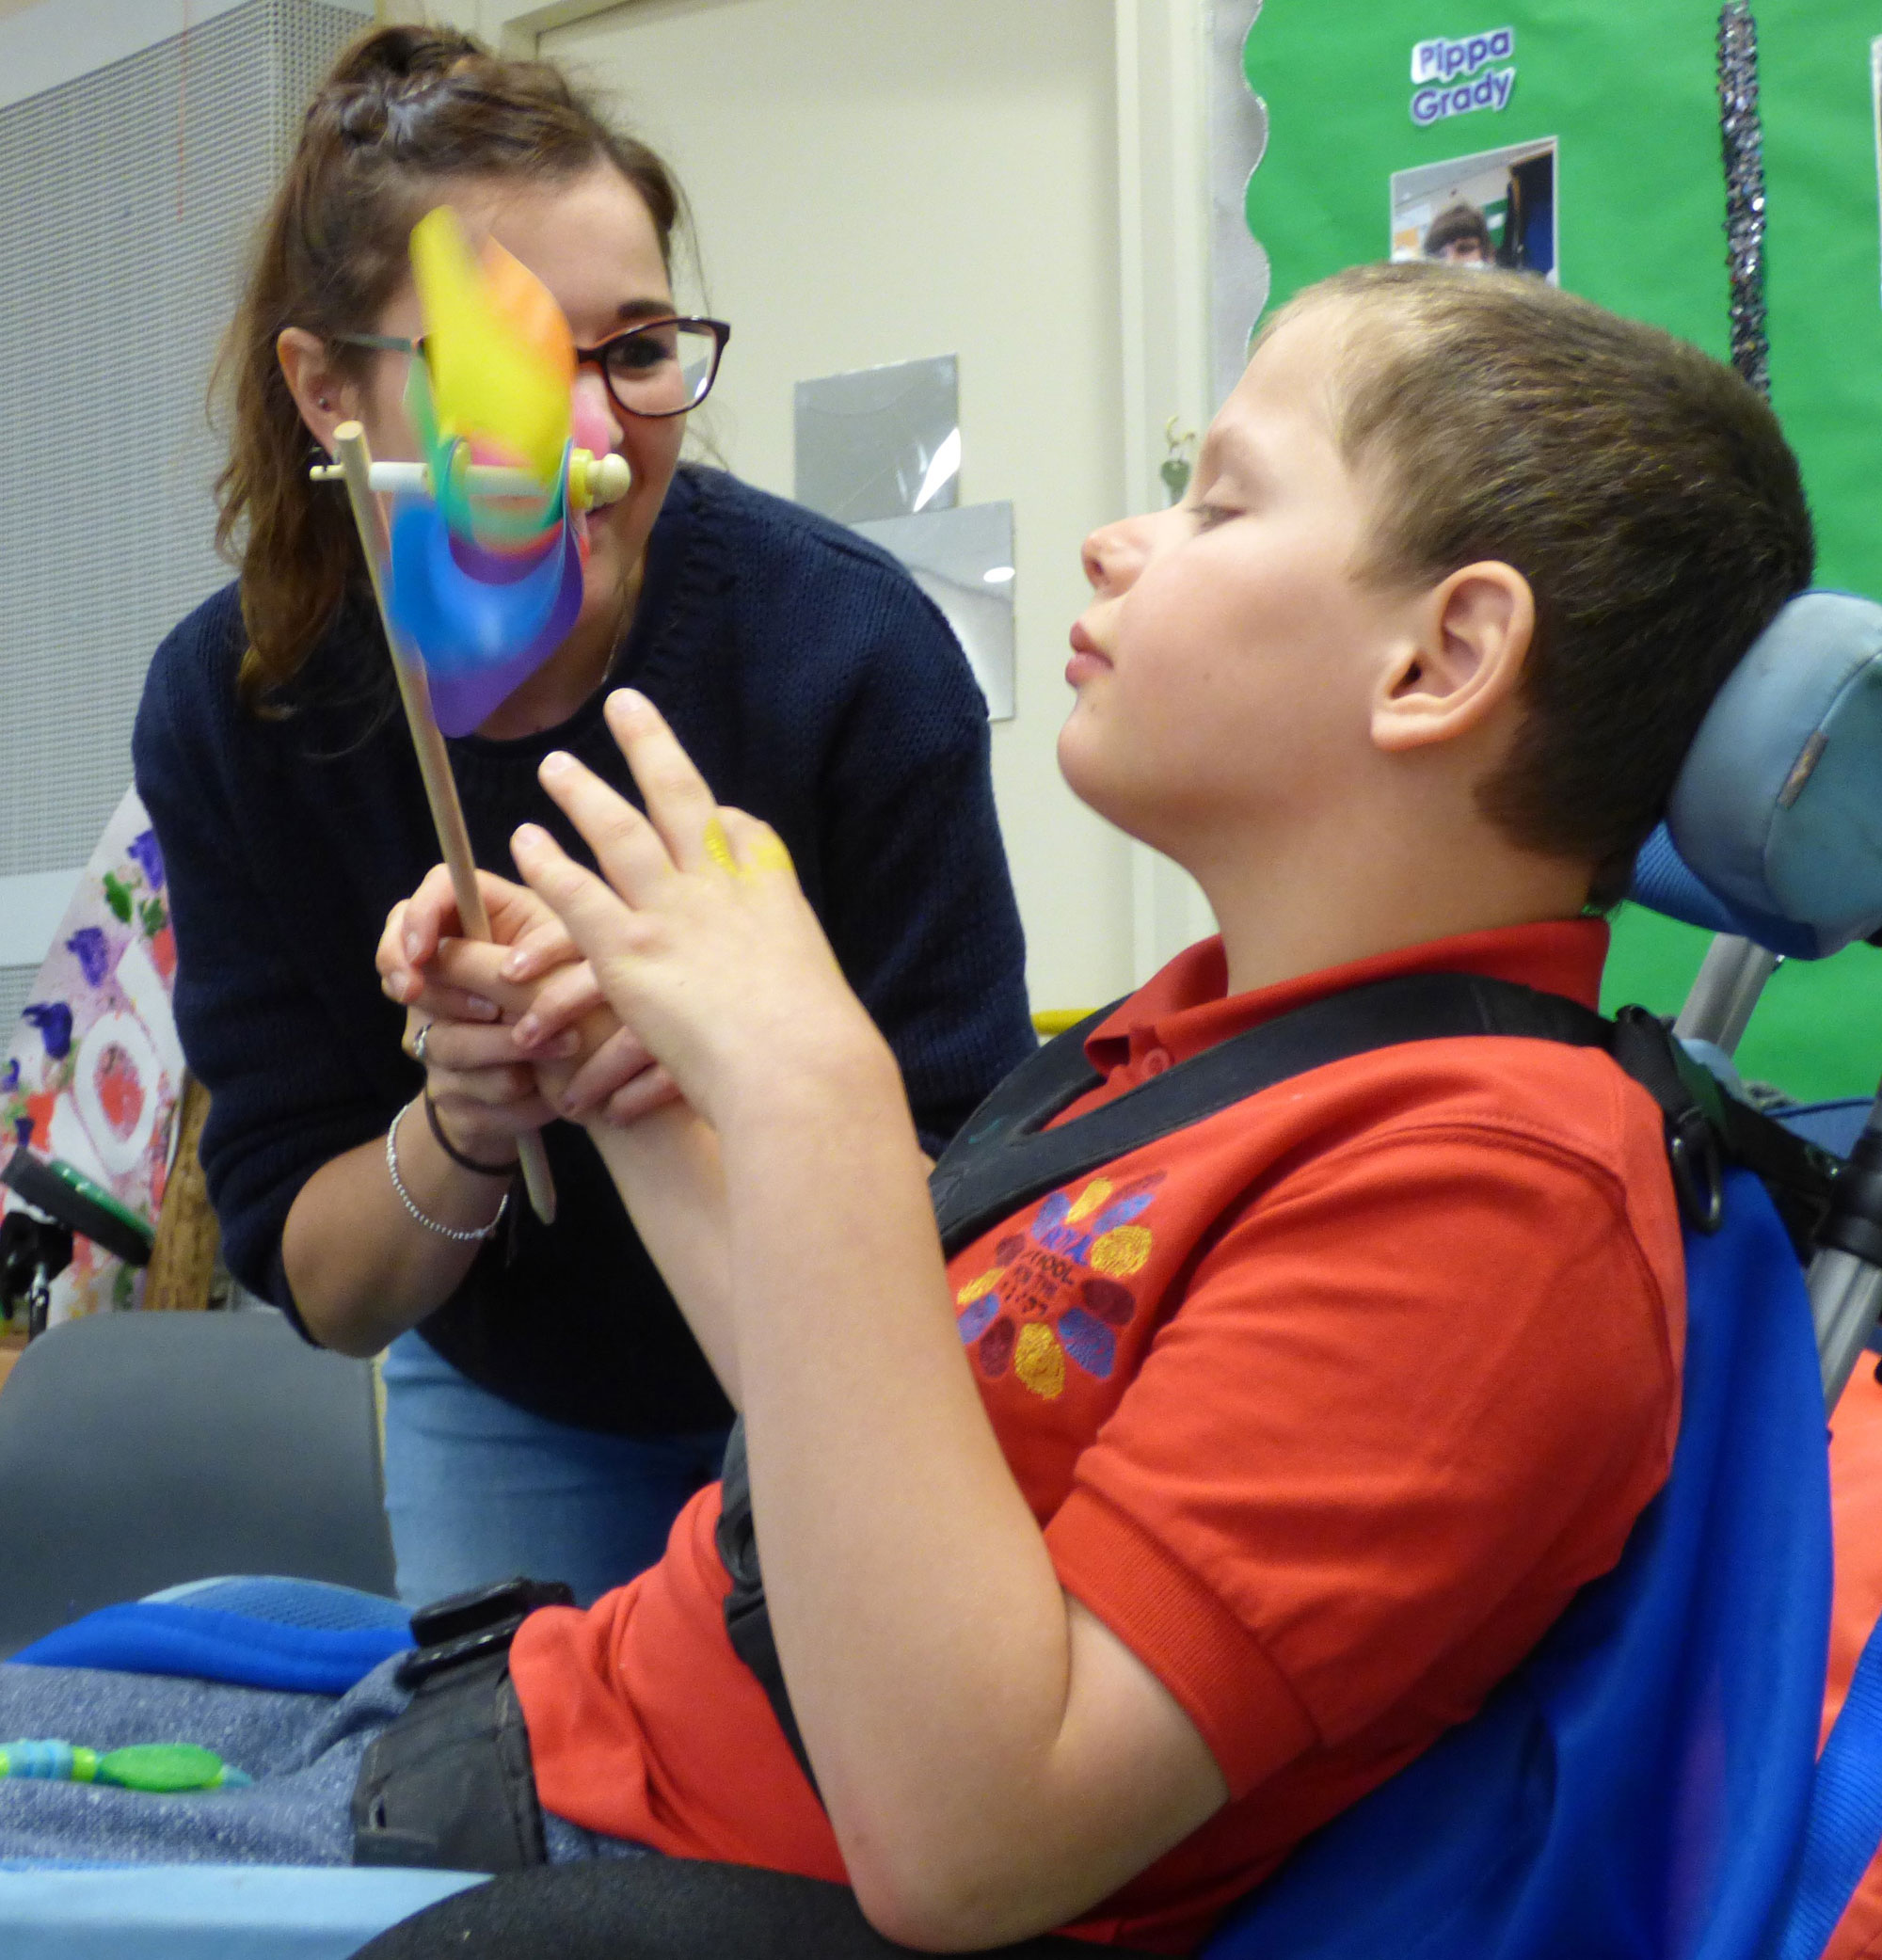 young boy listens to swirling handheld fan in workshop with woman